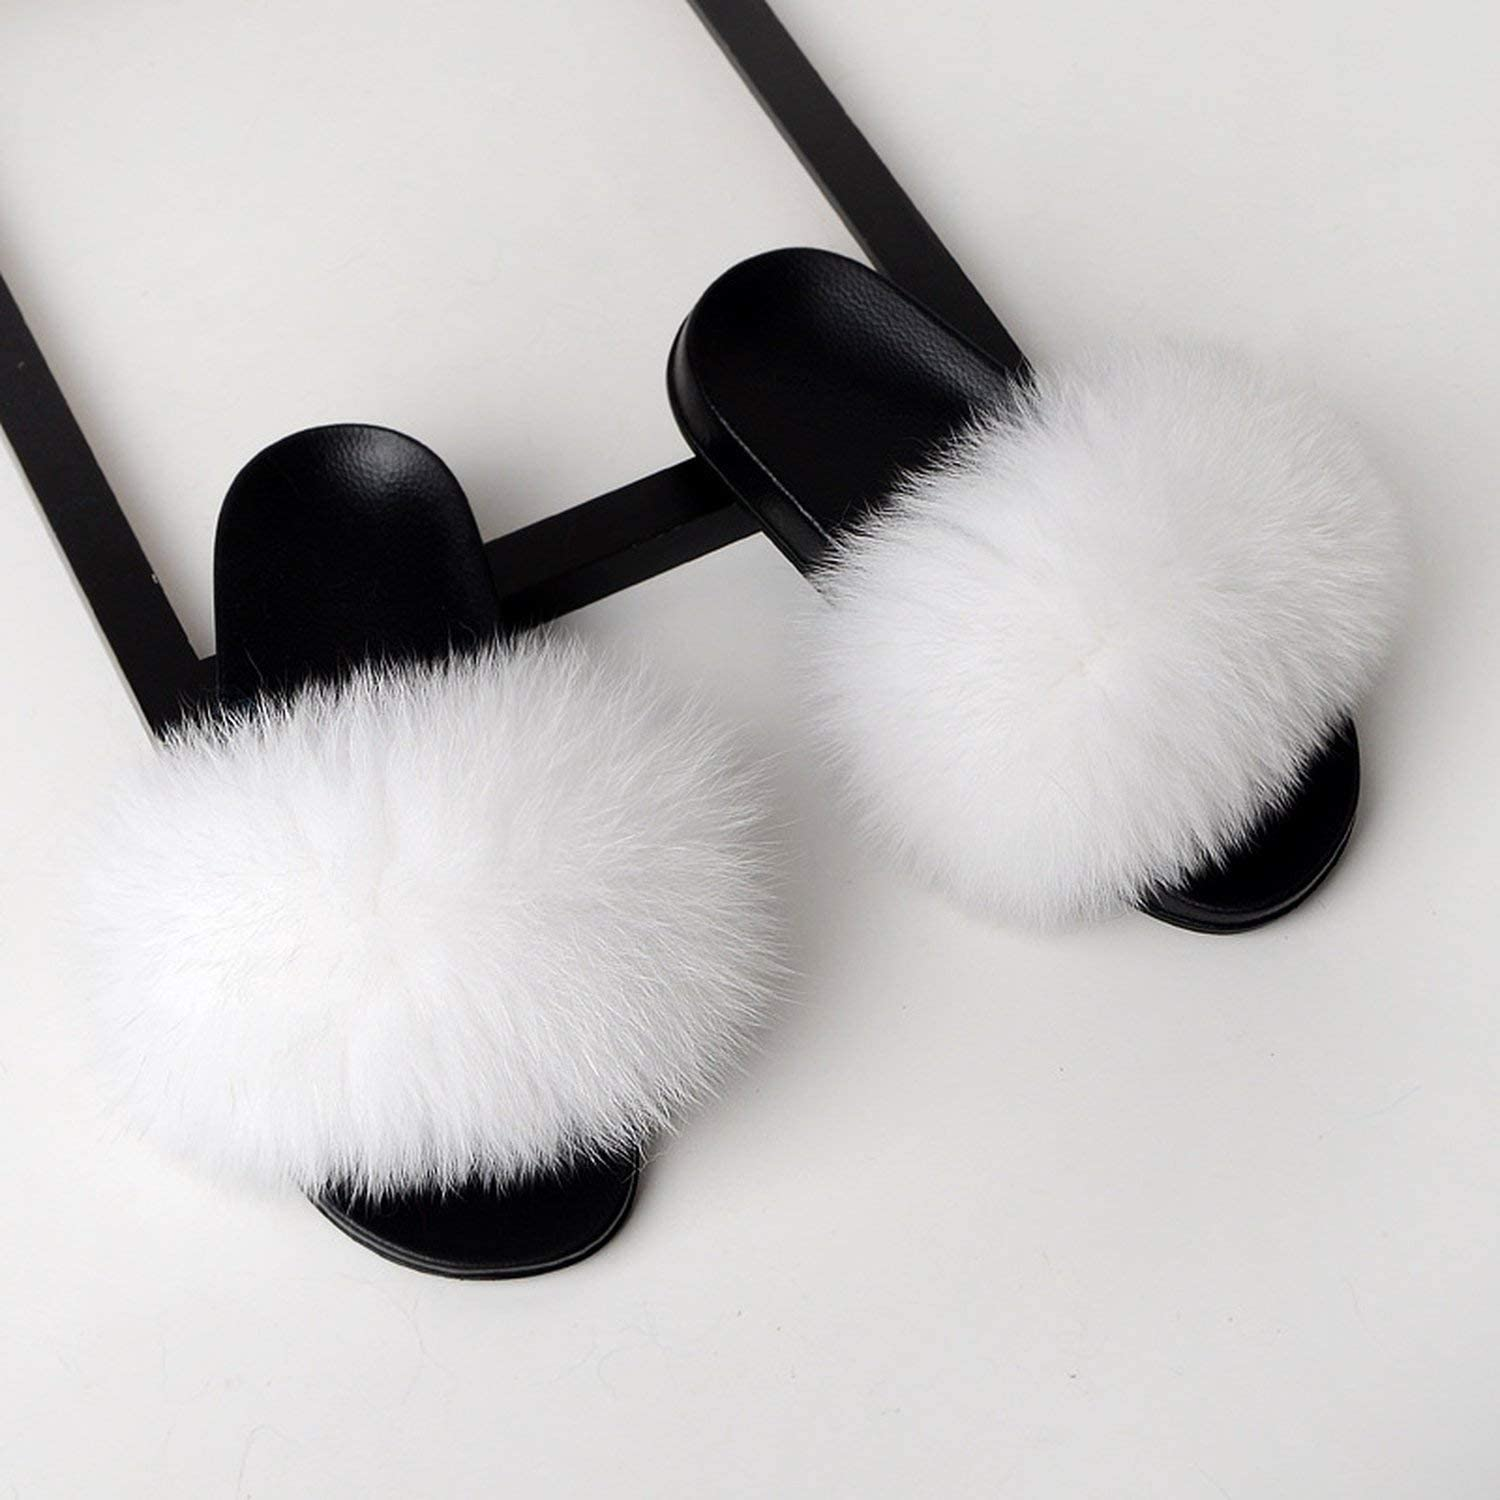 Fox Fur Slippers Slides Shoes Furry Fluffy Slipper Flip Flops Sandals Sliders Drag Sandal,Yellow,9